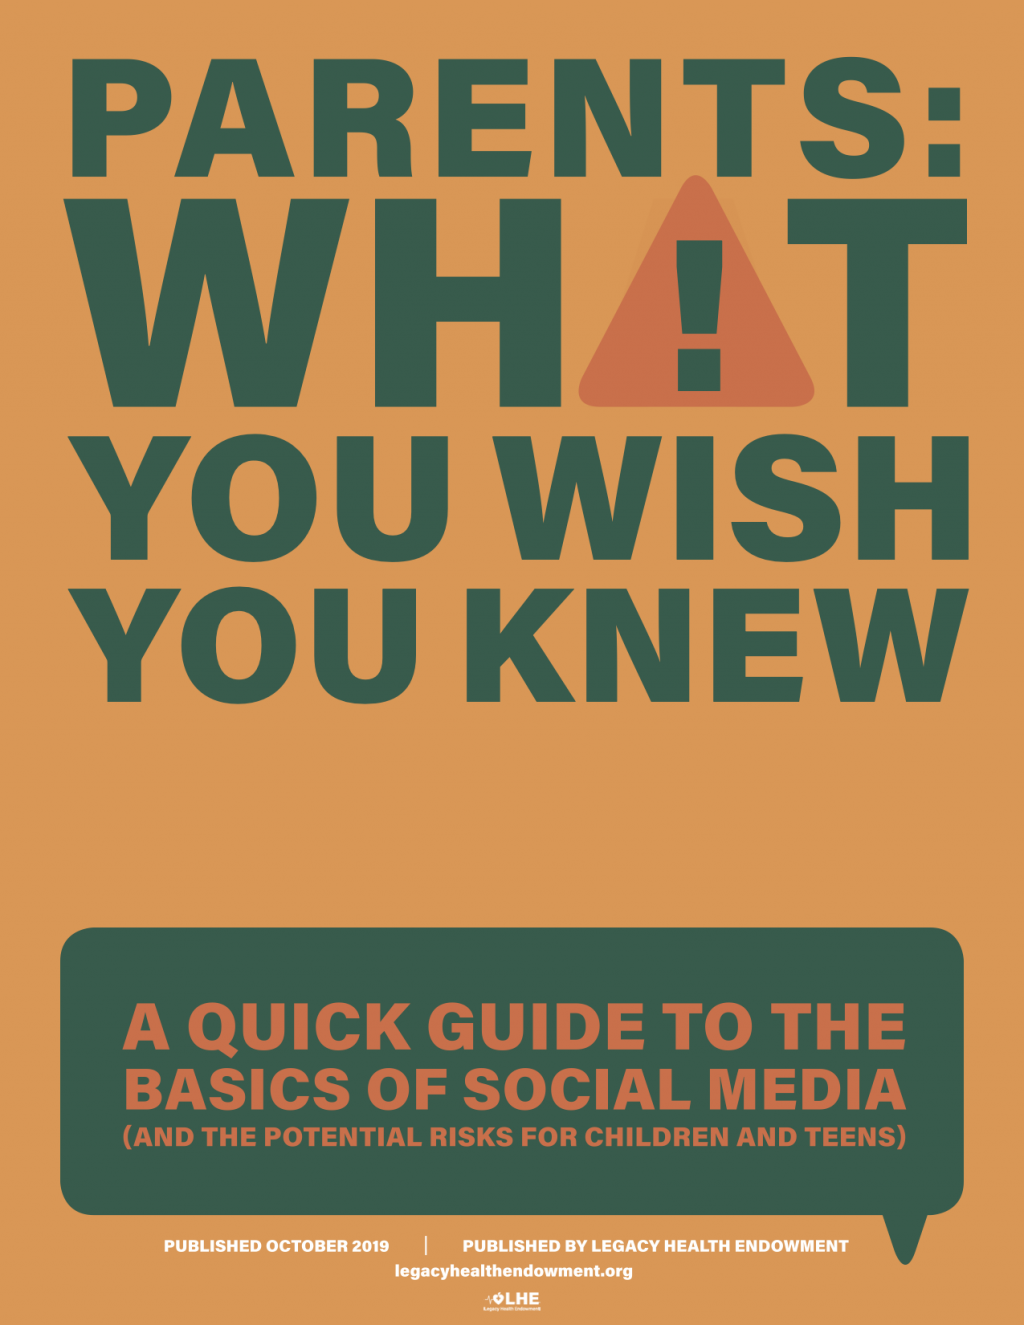 Parents: What You Wish You Knew